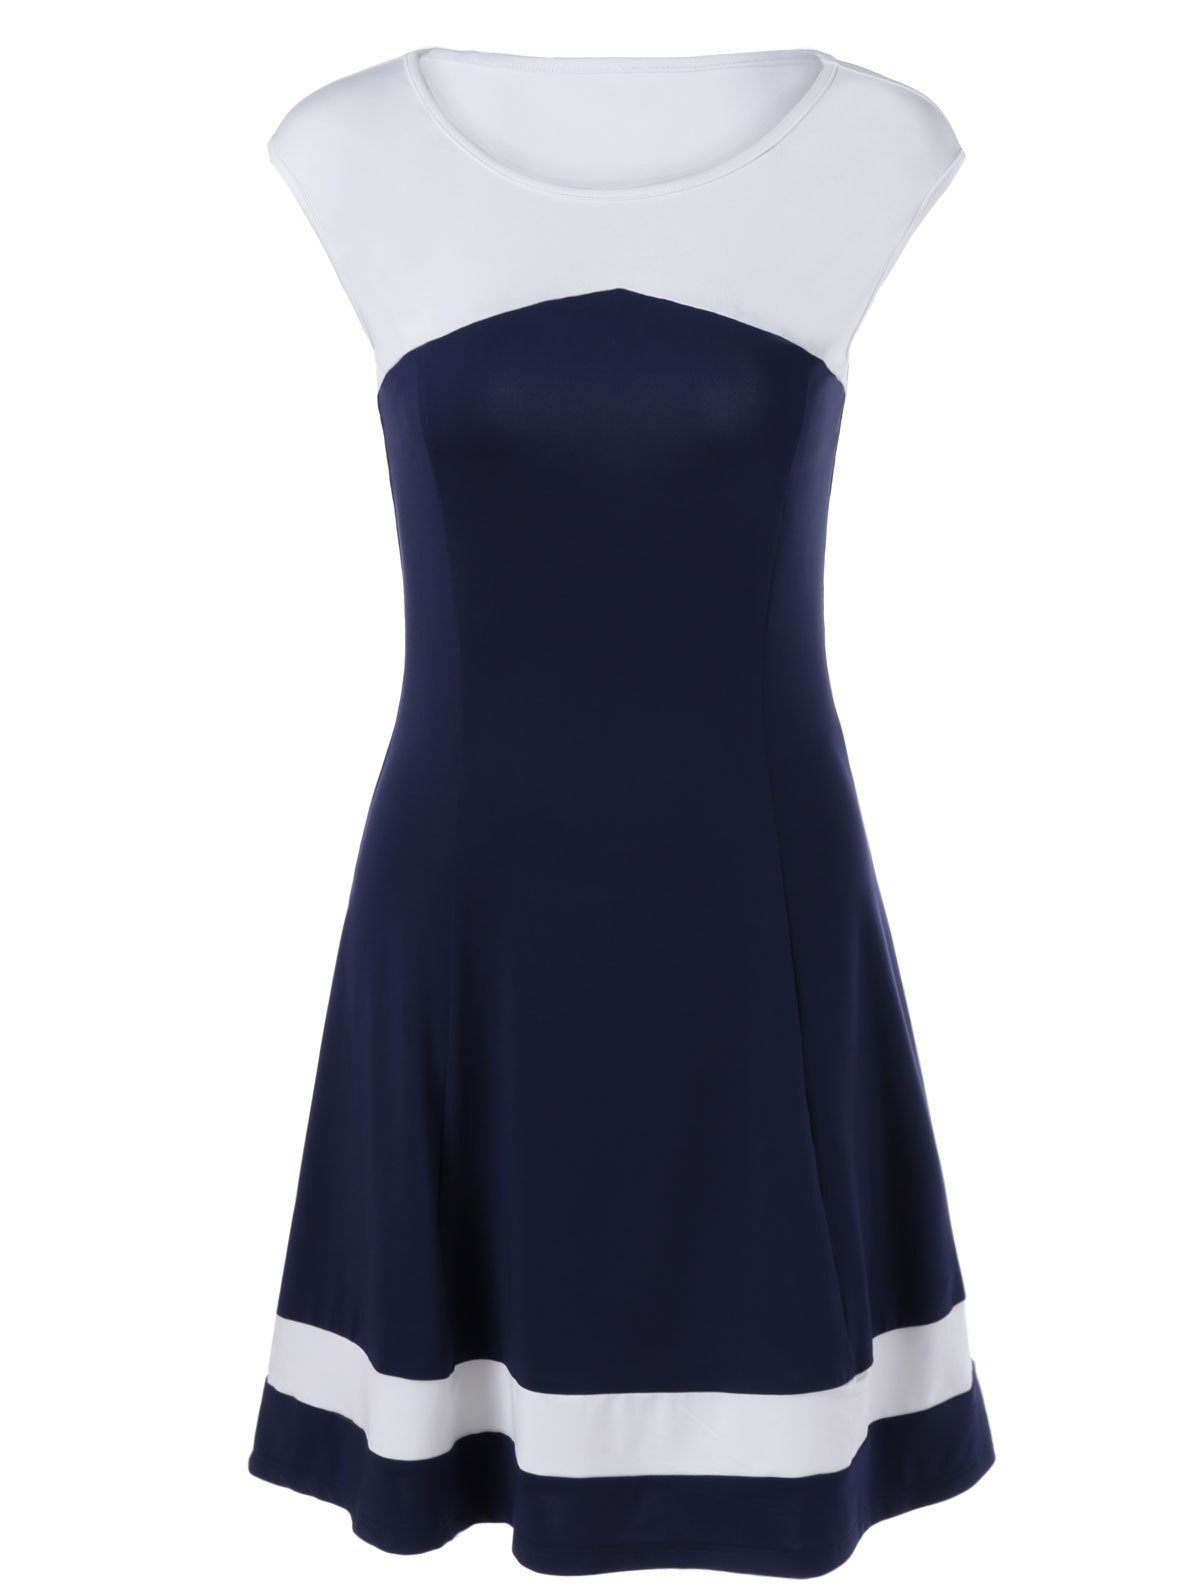 Brief A-Line Hit Color Women's Dress - BLUE/WHITE XL